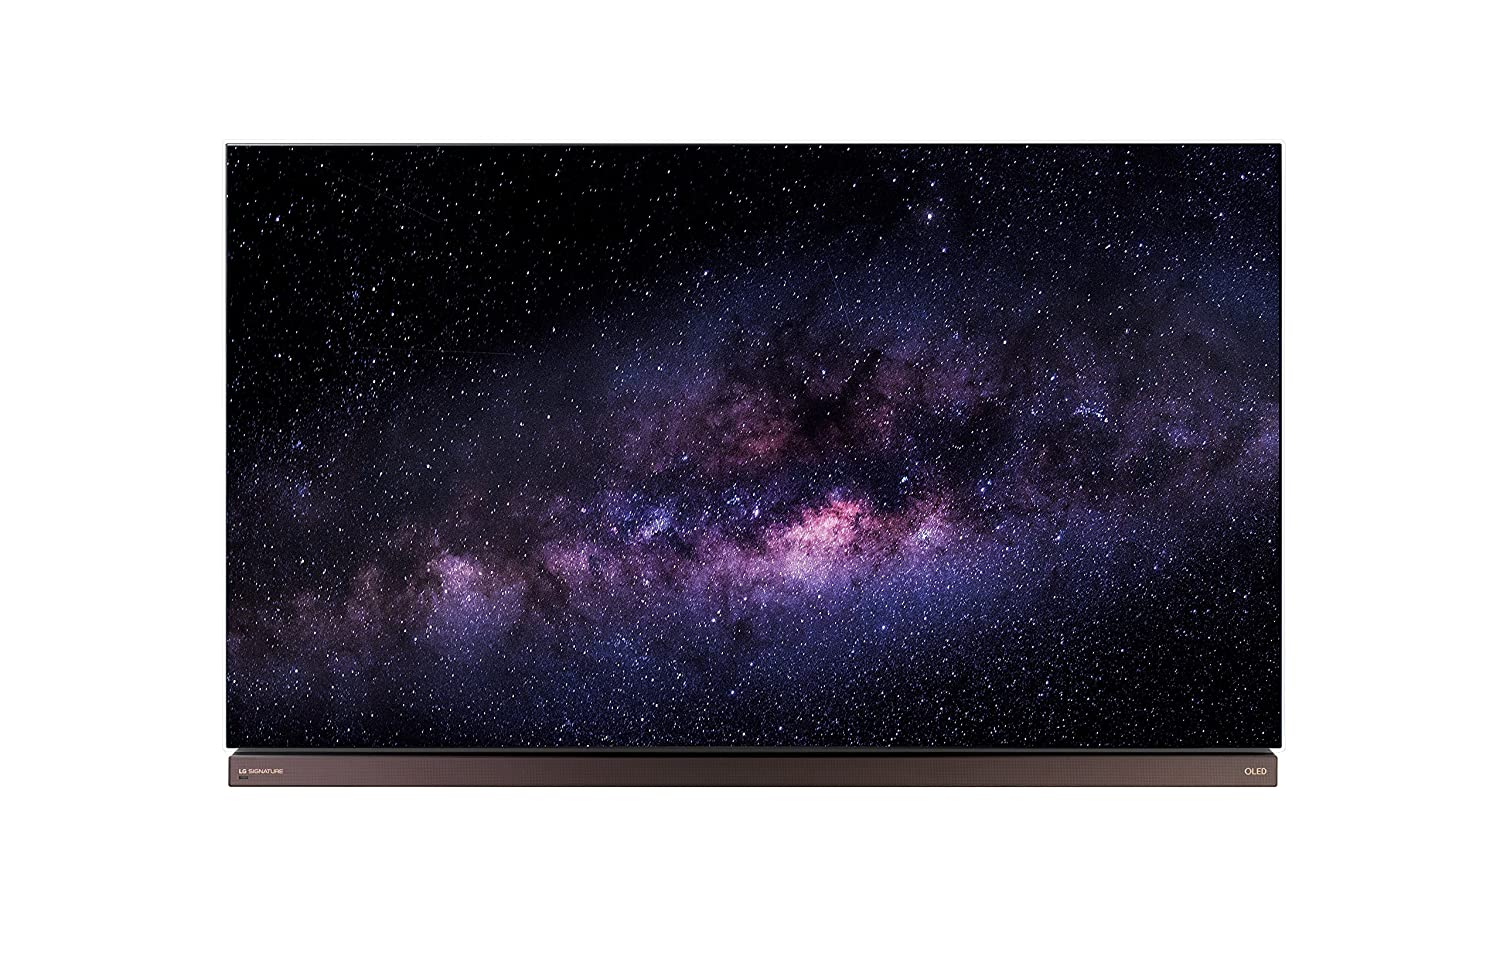 LG Electronics OLED65G6P Flat 65-Inch 4K Ultra HD Smart OLED TV (2016 Model)